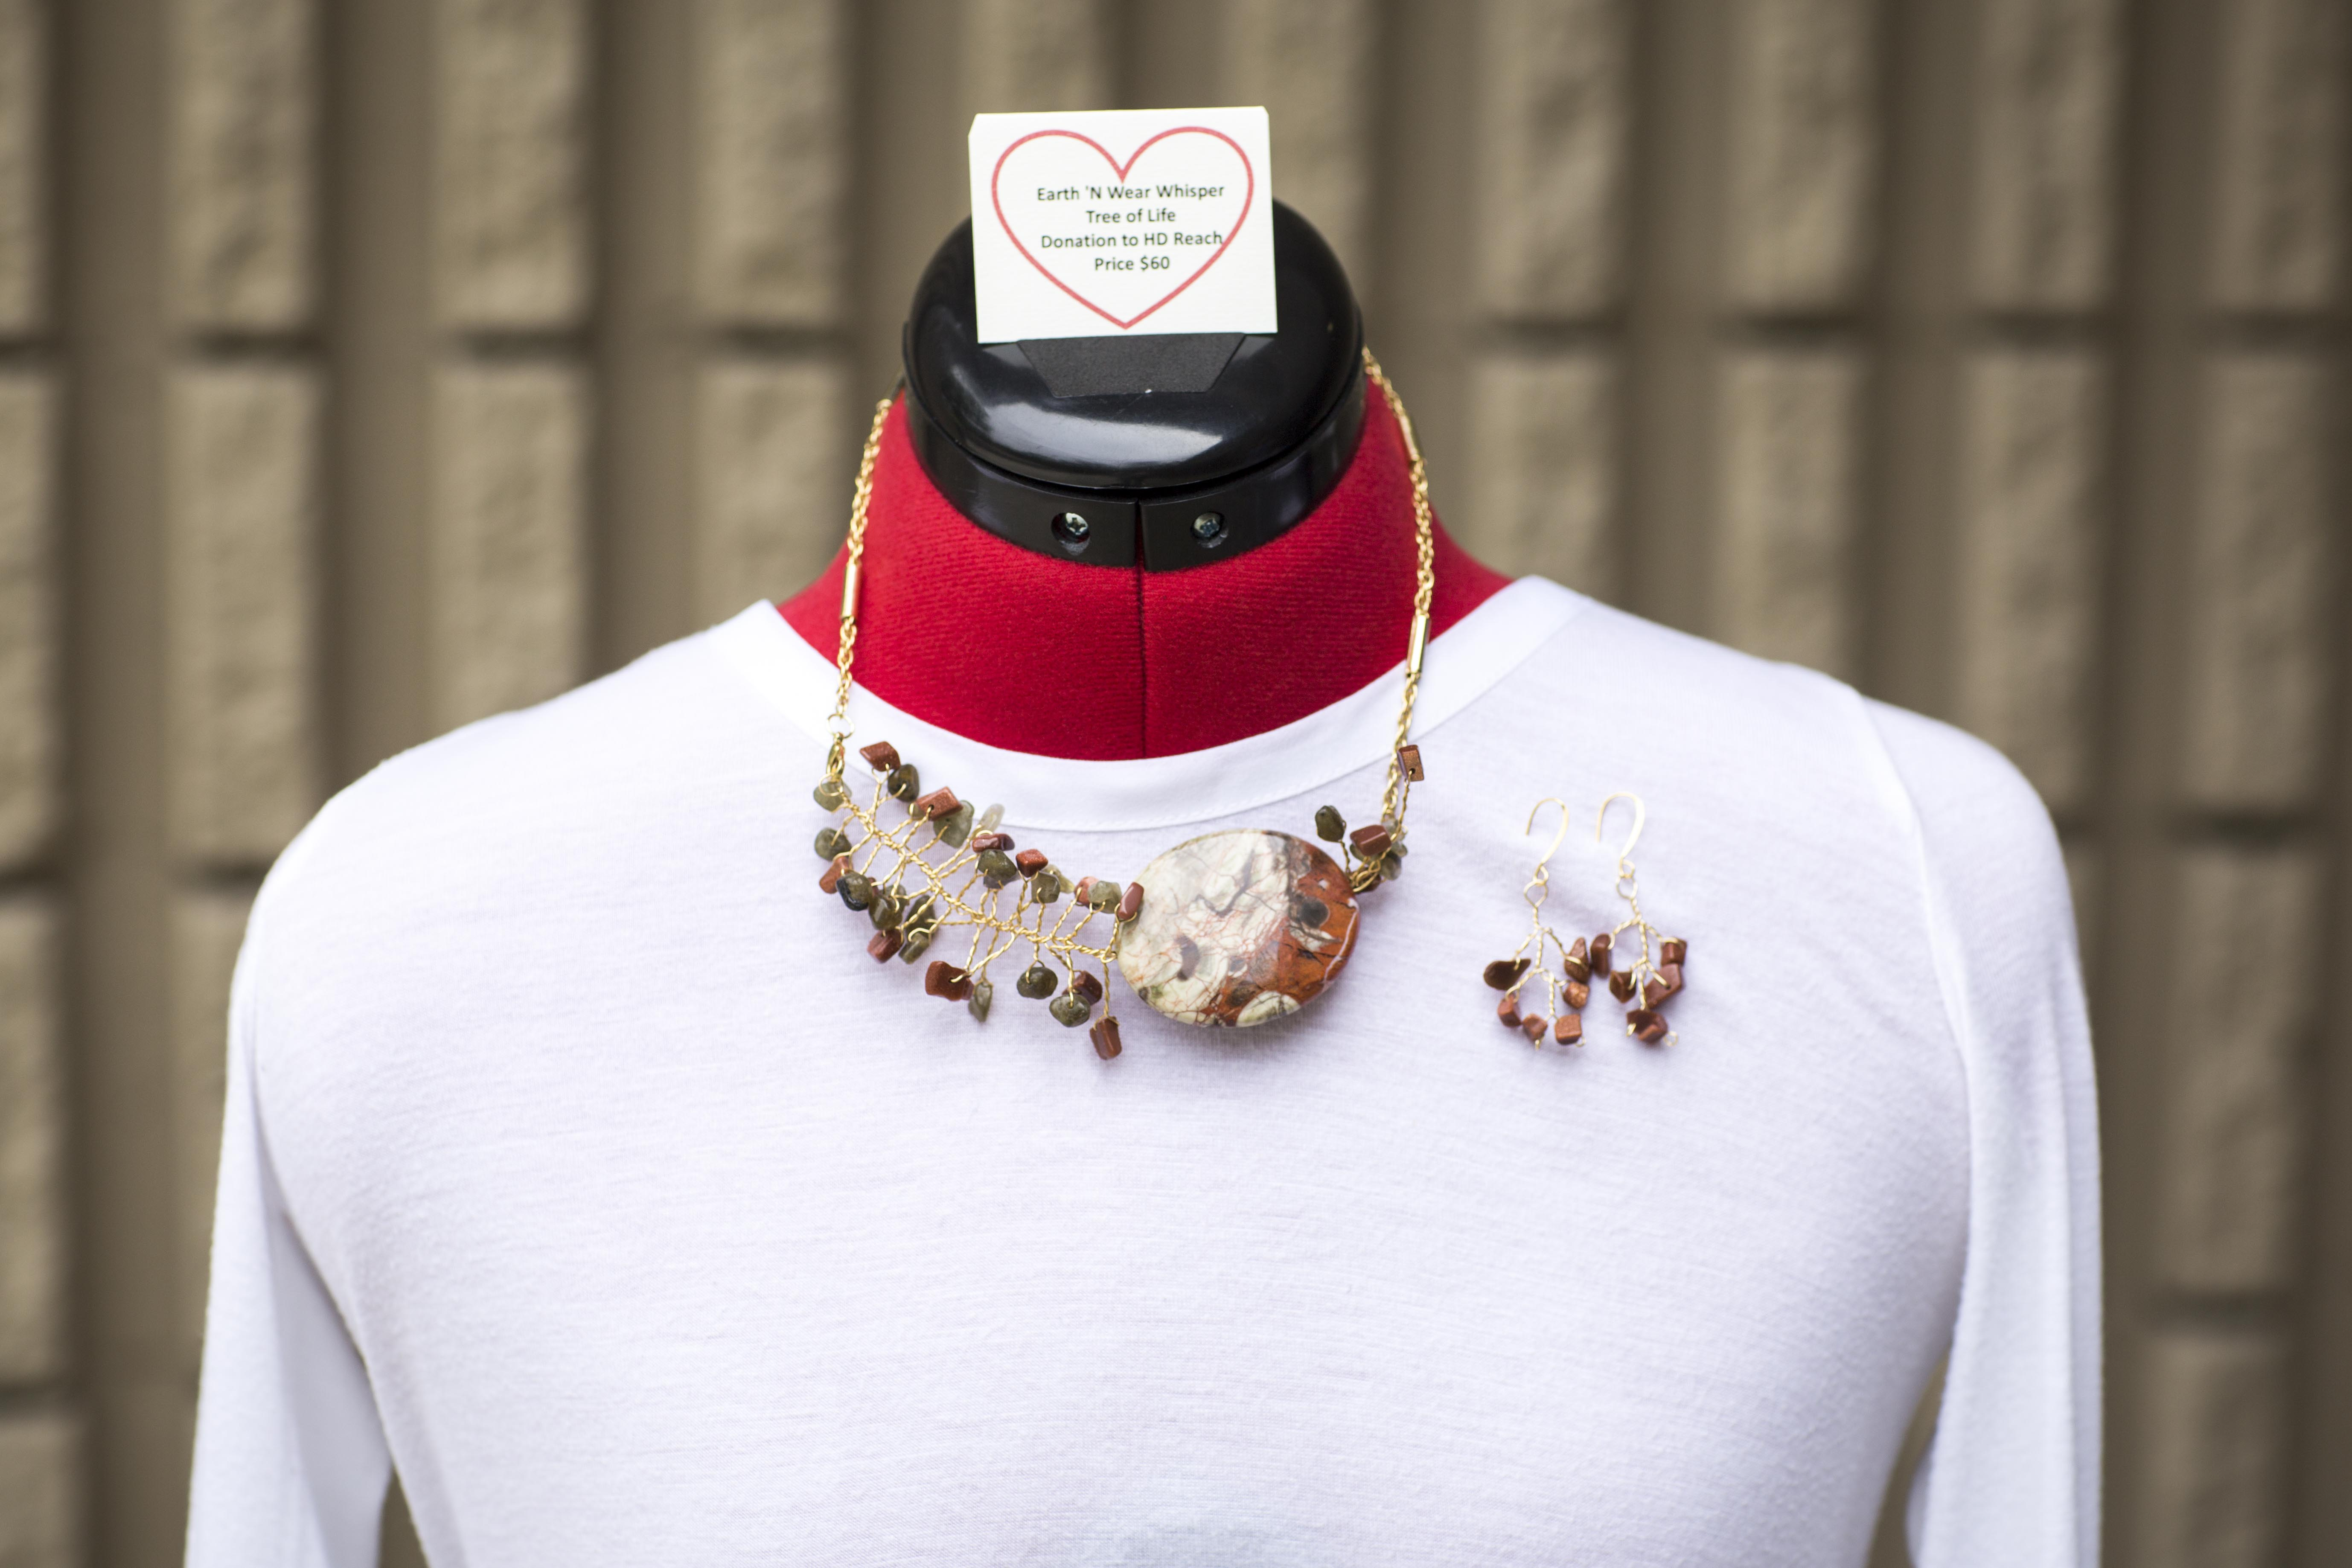 Necklace - ade and goldstone beads which are growing out of a large Mexican Laguna Jasper stone bead: promote frienship, good luck, and reducing stress.